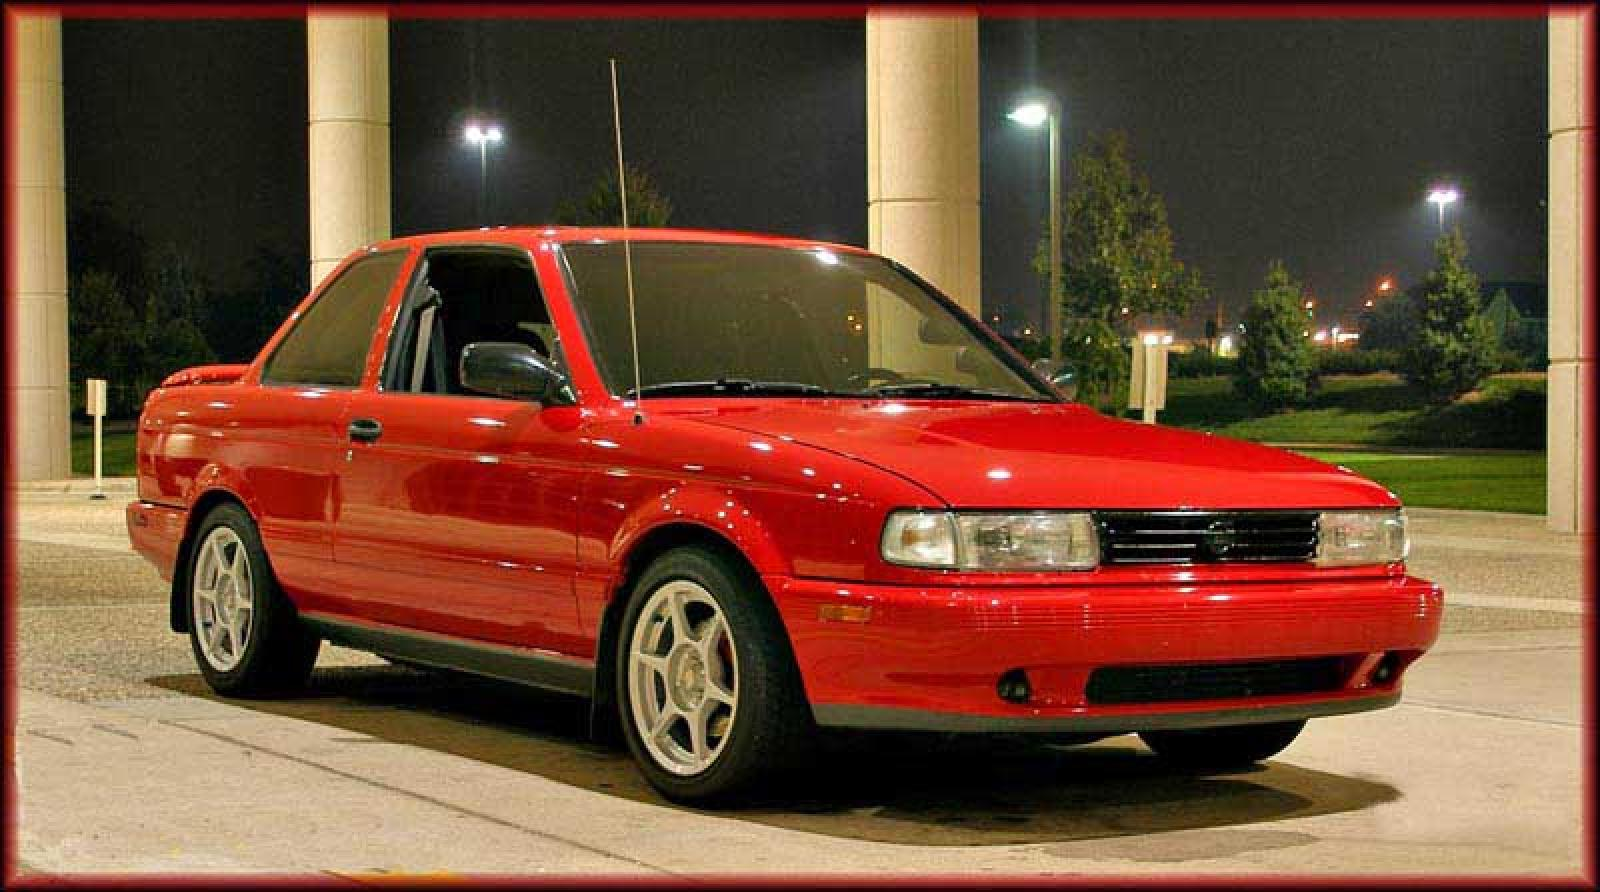 1992 Nissan Sentra - Information and photos - Zomb Drive